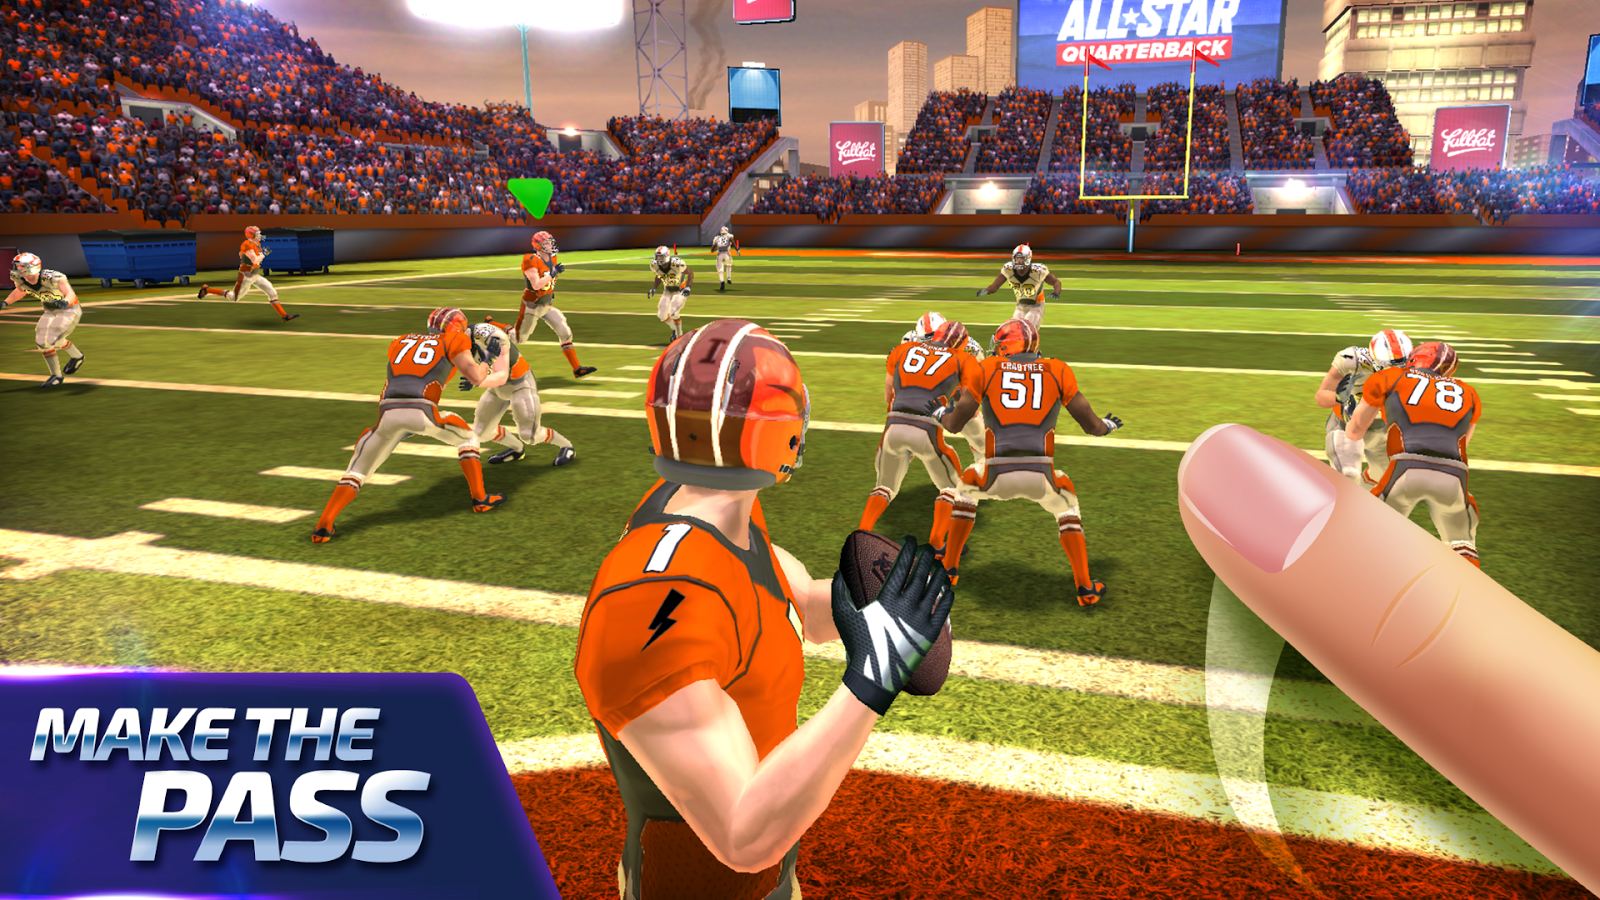 All Star Quarterback 17 Screenshot 1